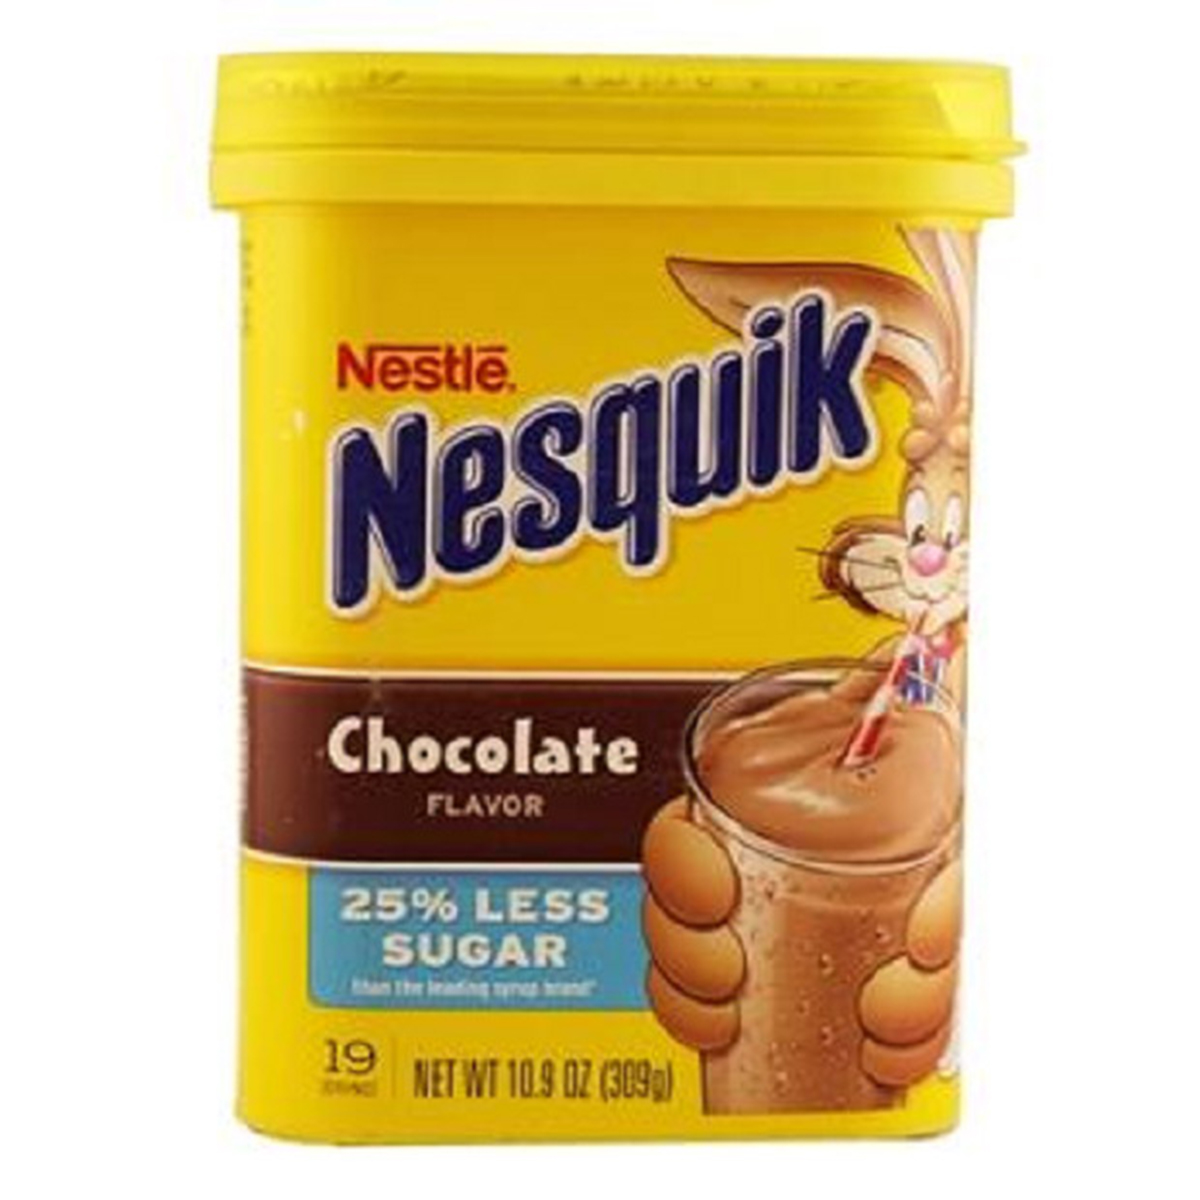 Product Of Nesquik, Chocolate Powder, Count 1 - Coco & Chocolate Mixes / Grab Varieties & Flavors